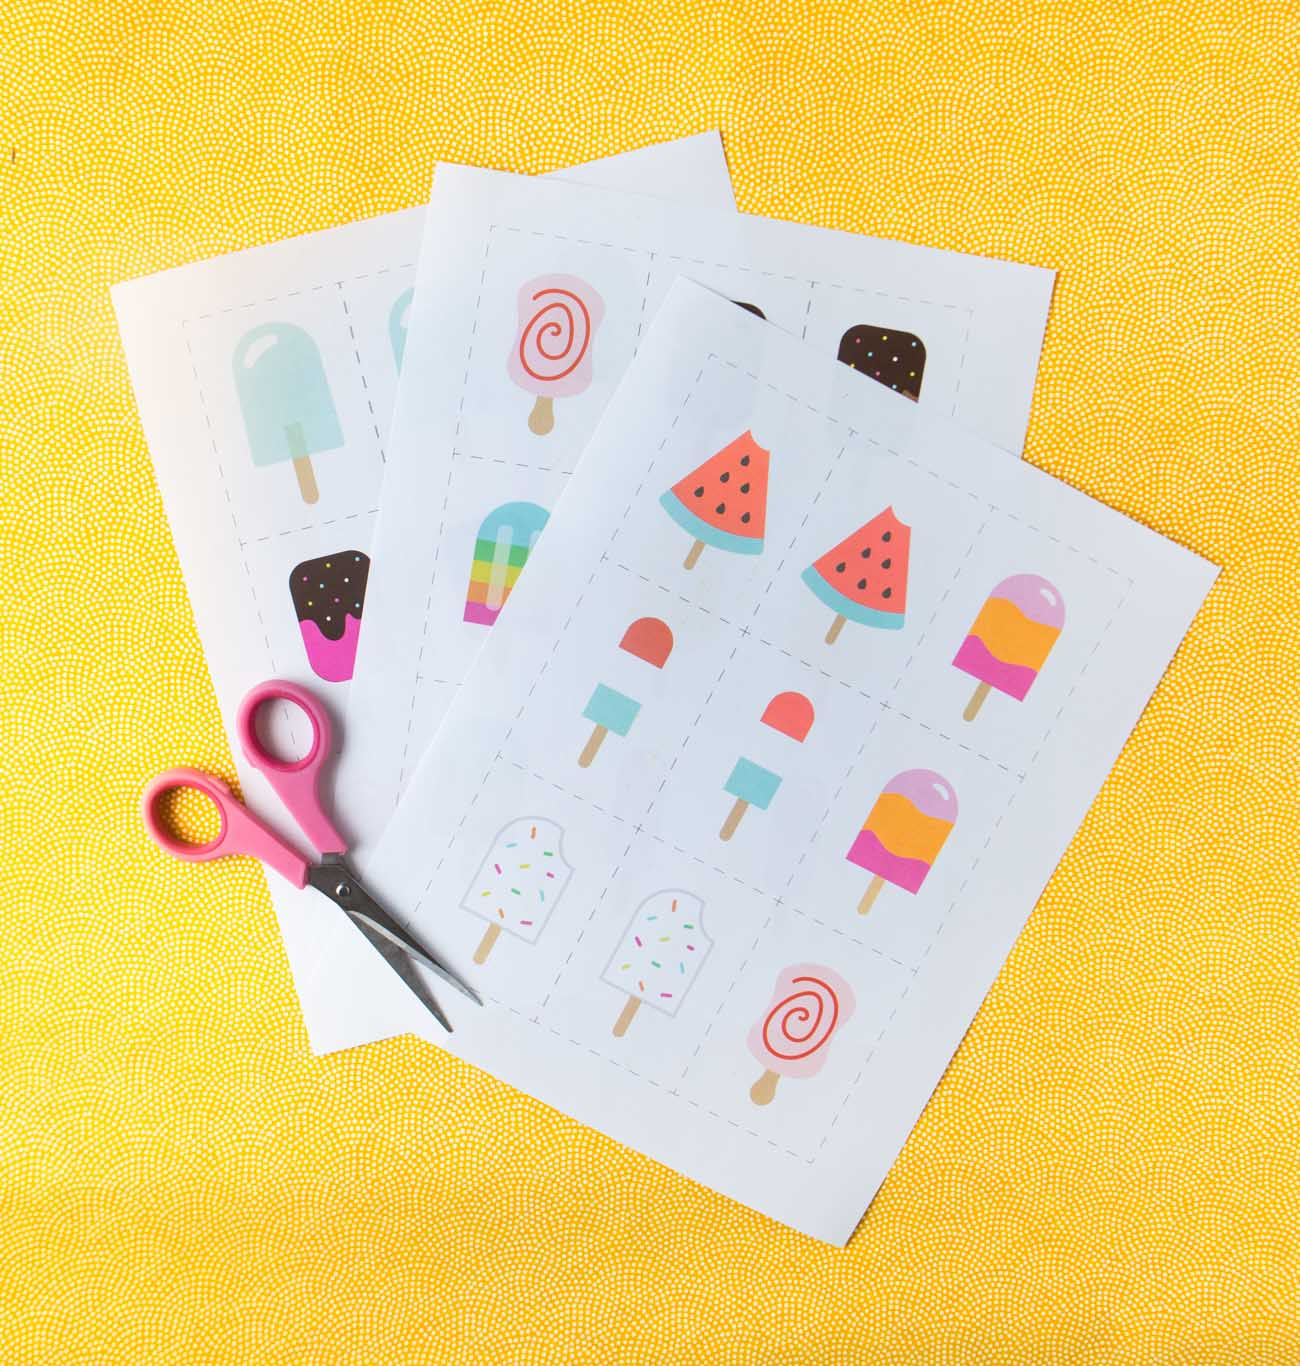 Printed sheets of paper with printable memory cards and scissors